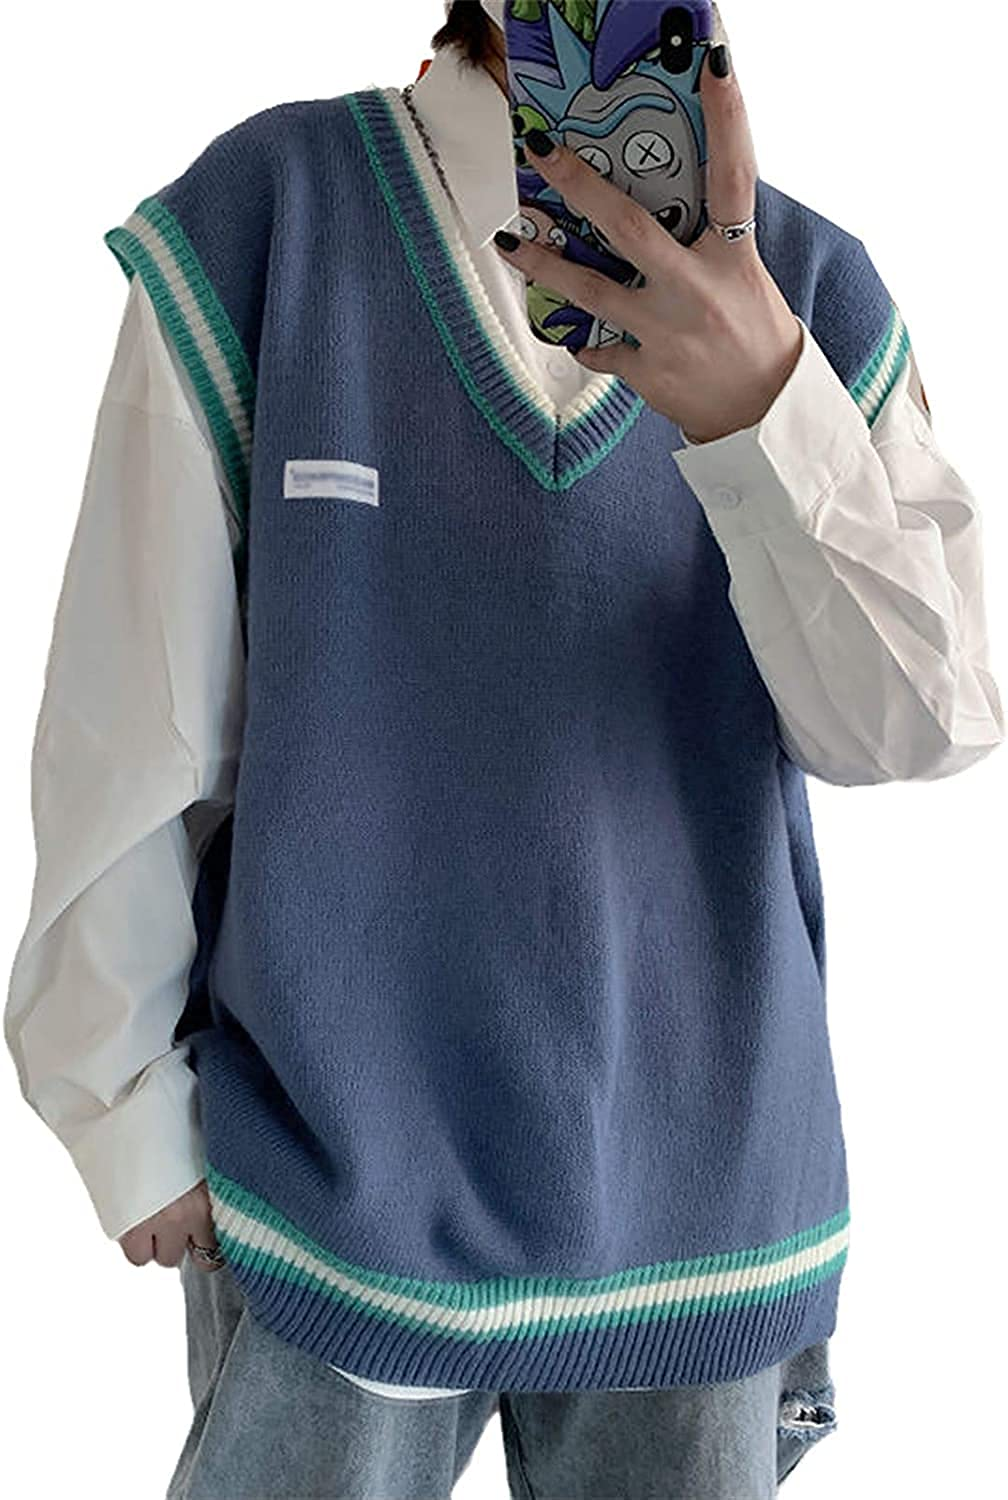 Sweater Vest Men V-Neck Knitted Couples Oversize Harajuku Vests Ins Chic Korean Style Leisure (Blue,Small)